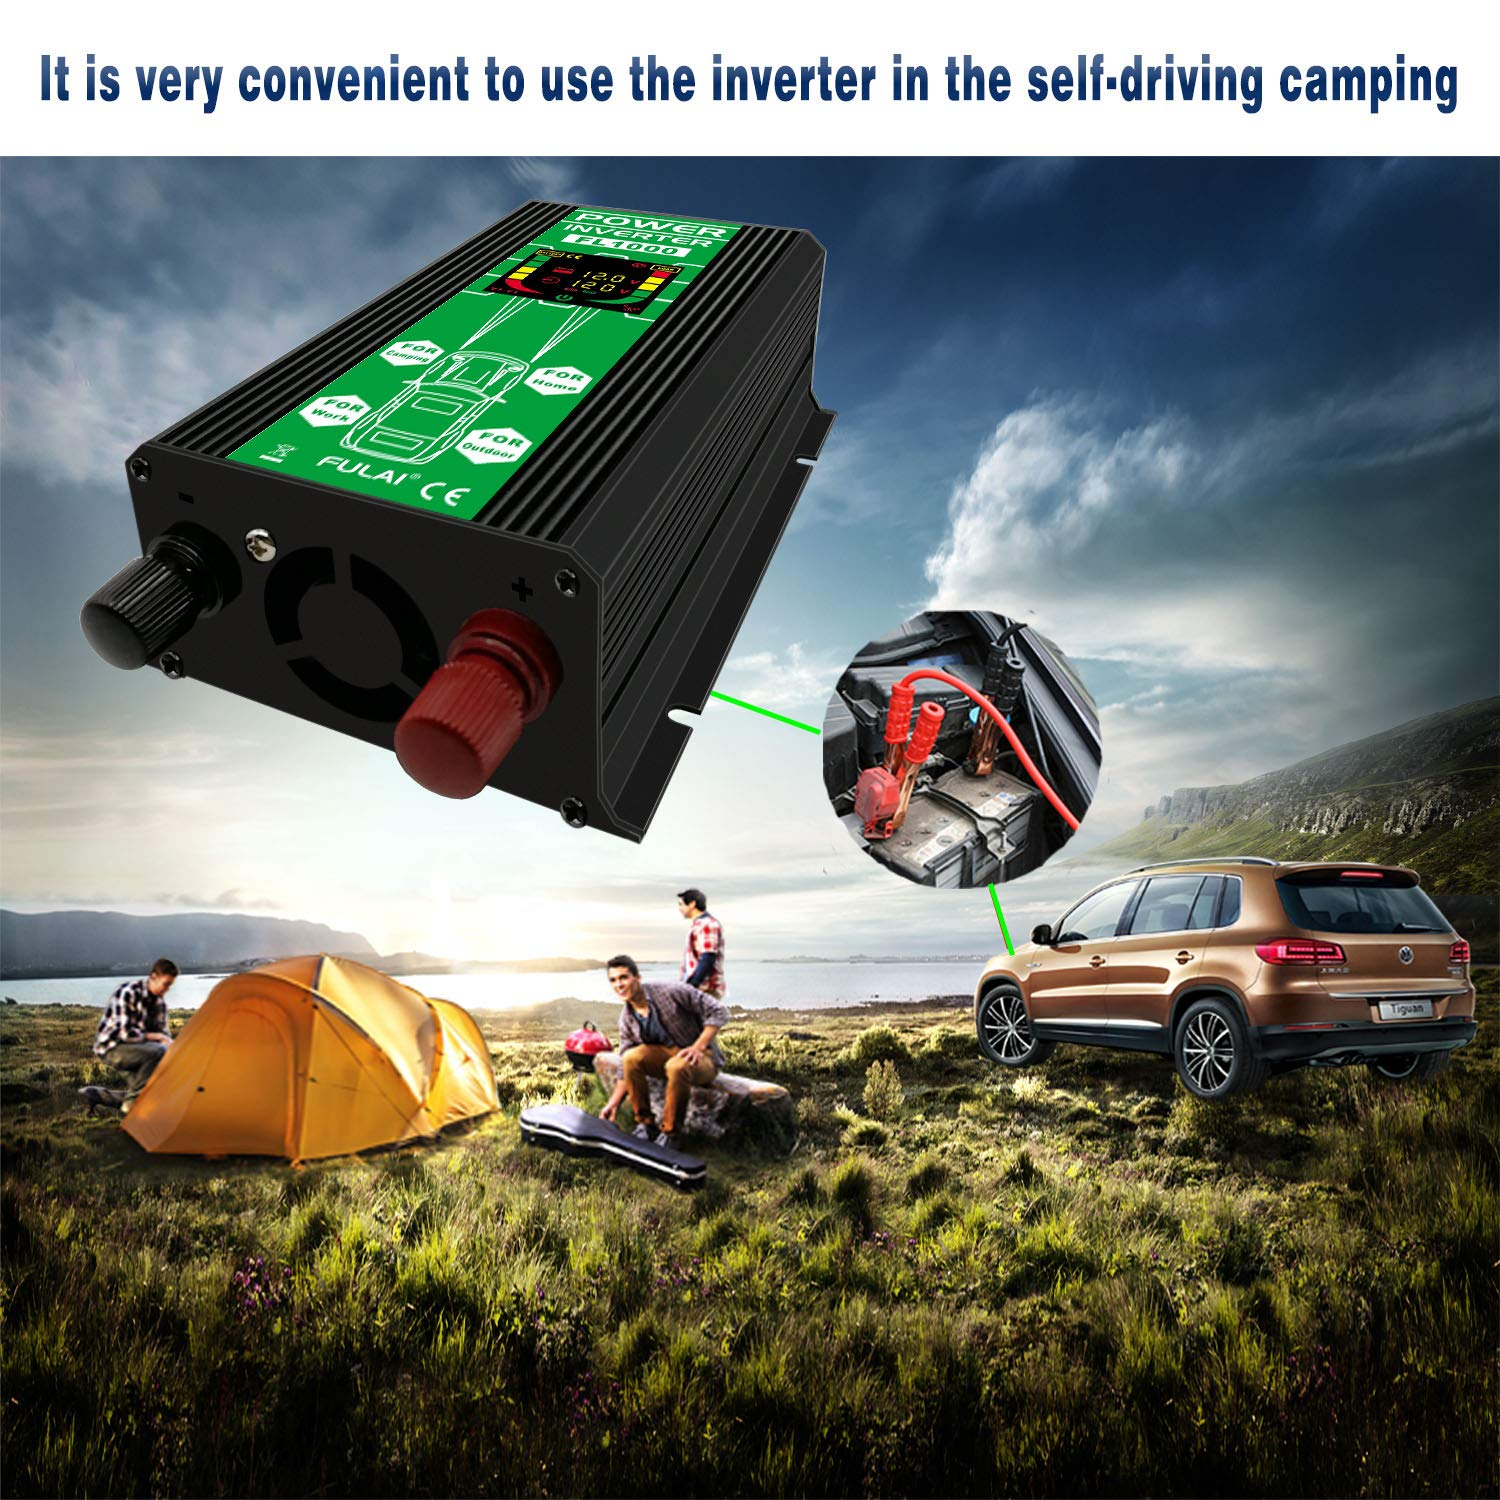 Fulai 1000w Power Inverter Dc 12v To Ac 110v Car Pure Sine Wave Circuit Diagram 2017 2018 Best Cars Converter With Lcd Display Screen Usb Port Black Electronics